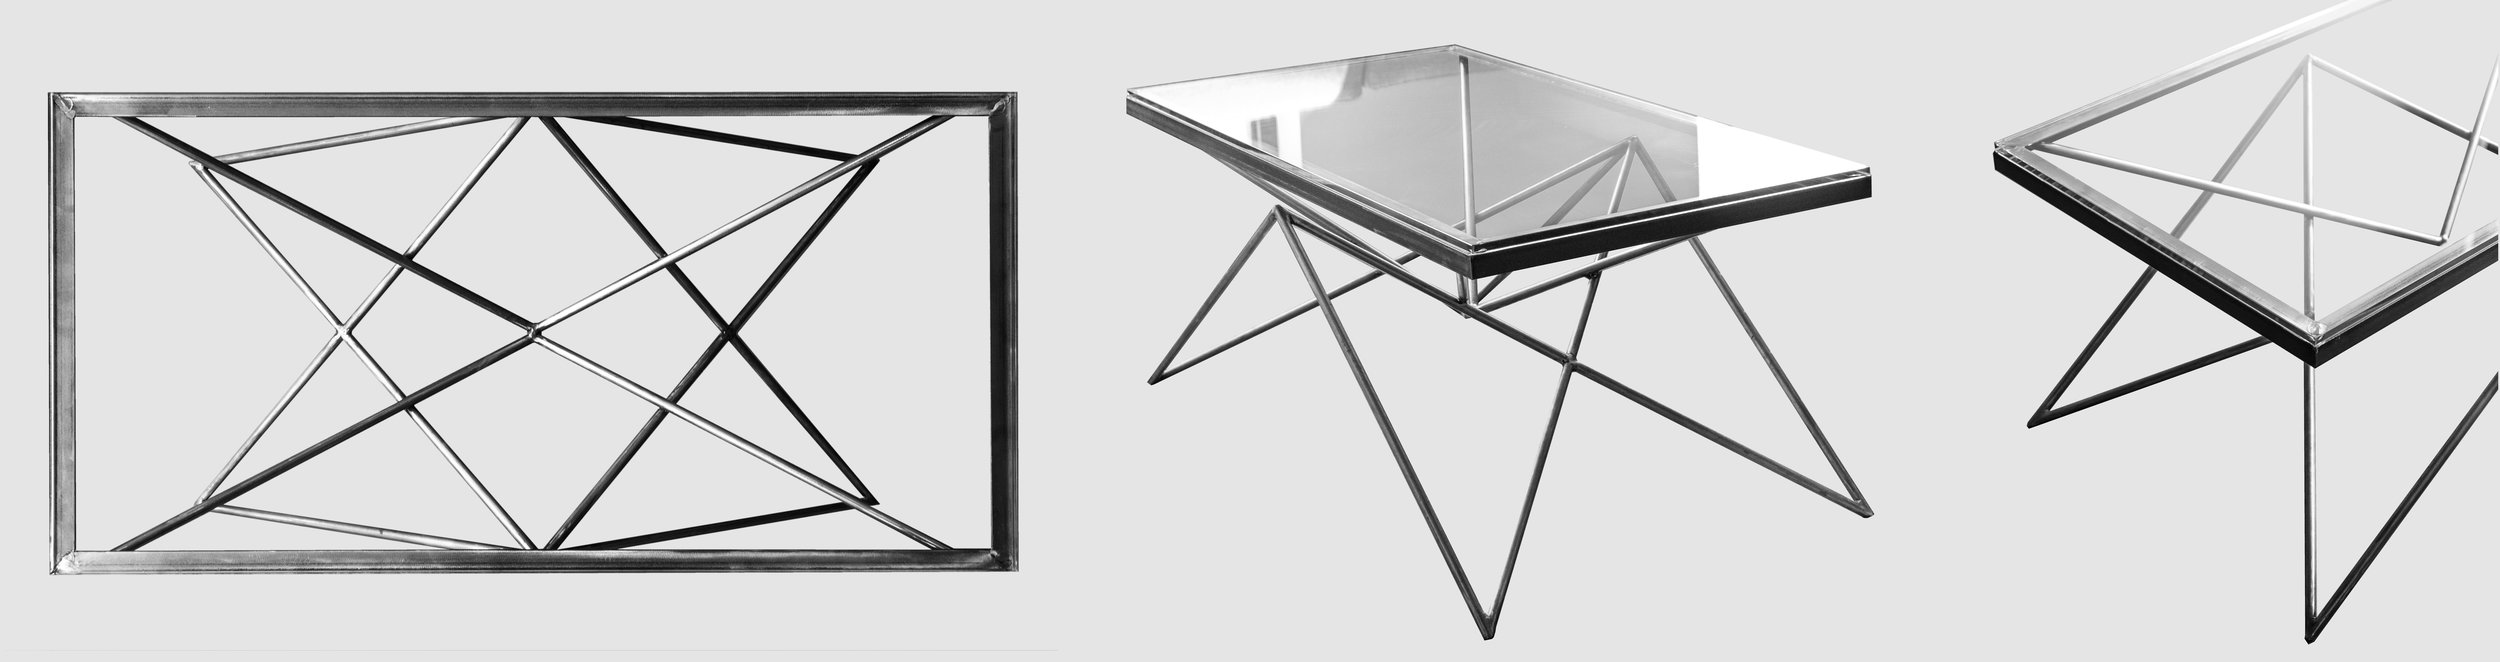 Metal and glass table    Collaboration with Ludovic Dubeau. Steel and metal table designed and fabricated in 2017.